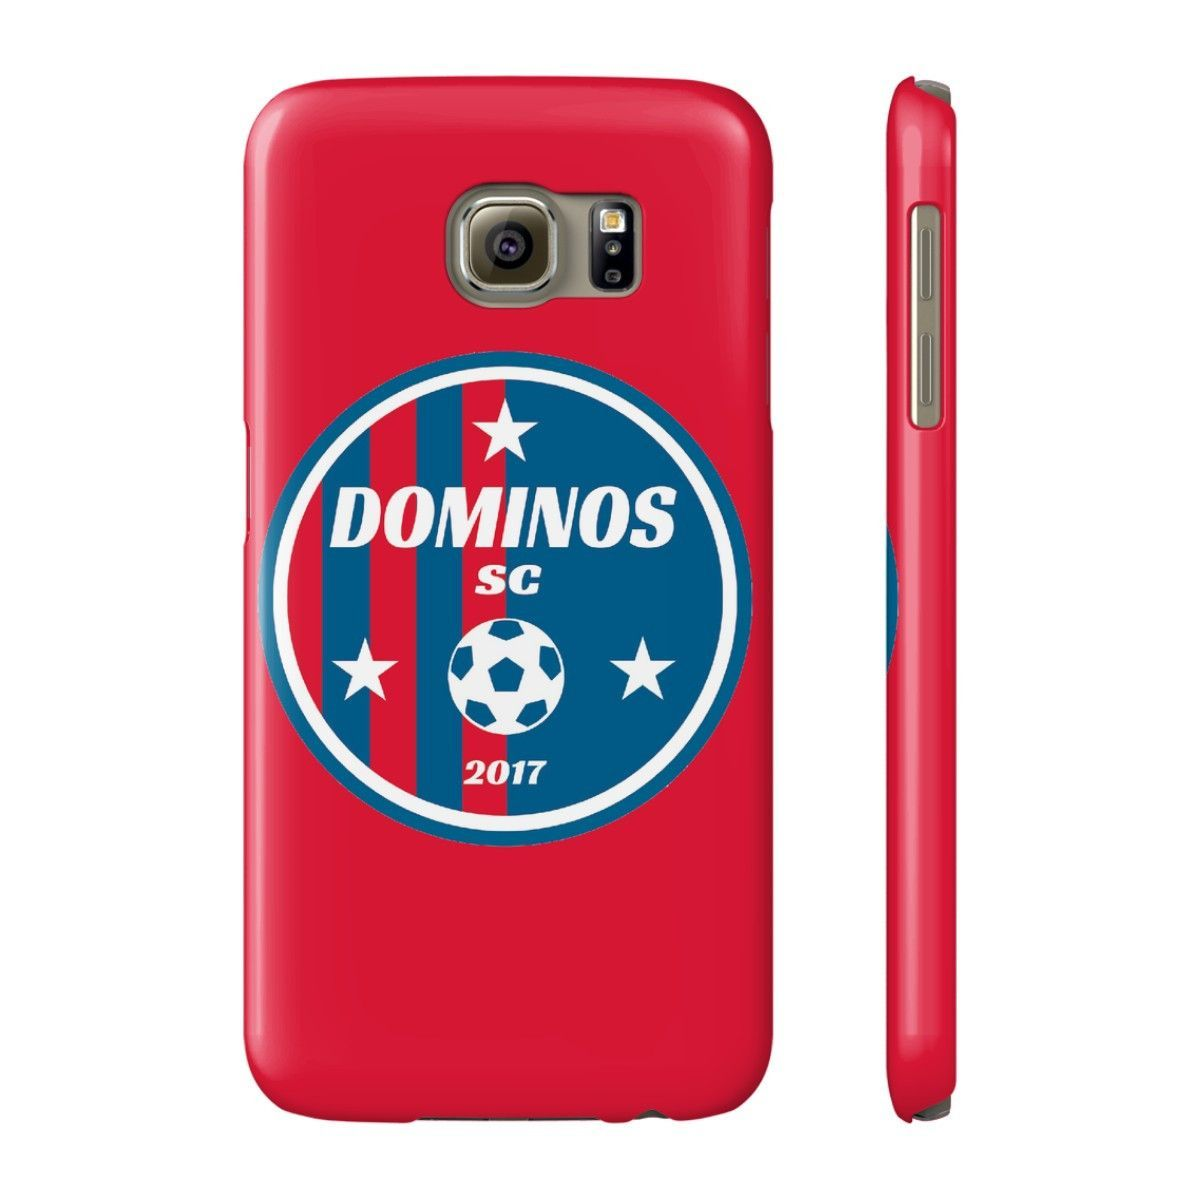 Dominos Soccer Club Phone Case for iPhone and Galaxy Models - Red